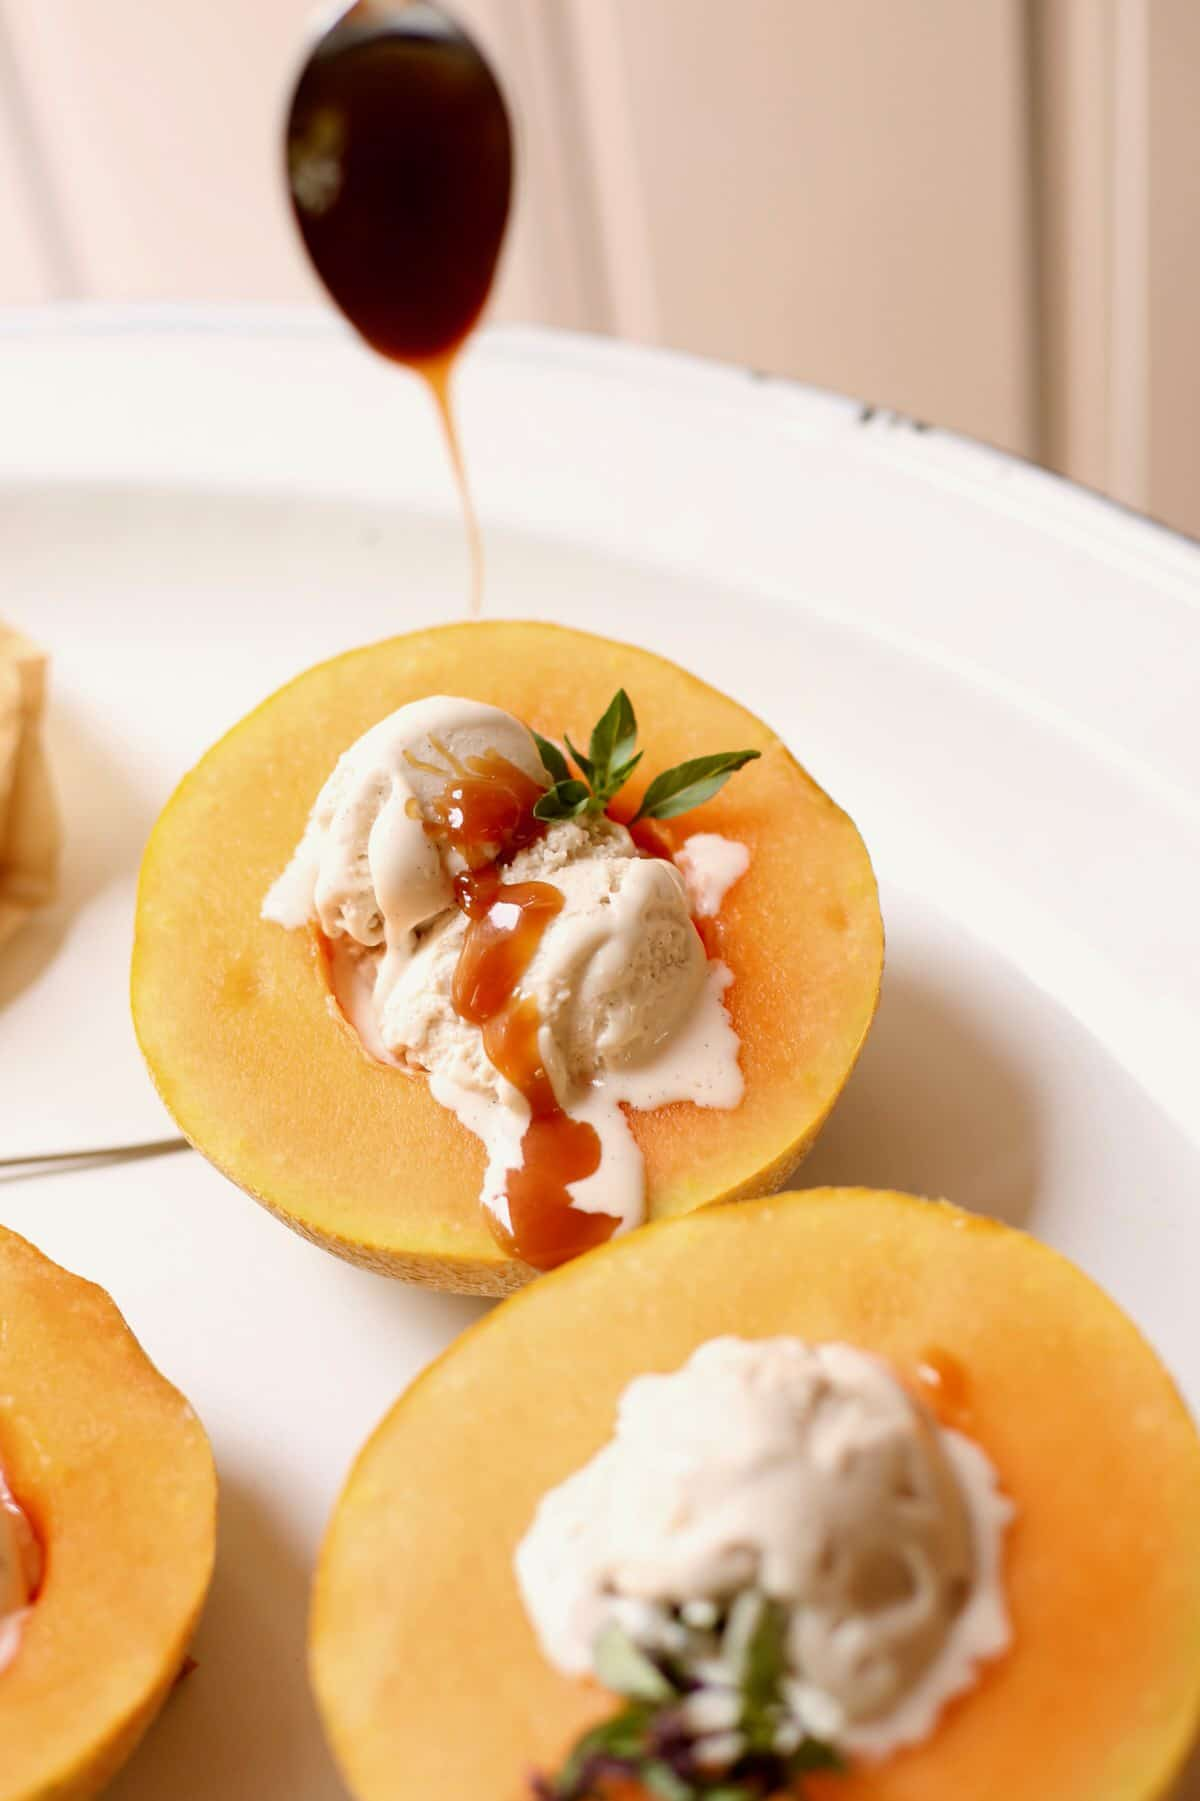 melon with ice cream and caramel sauce being poured over the top